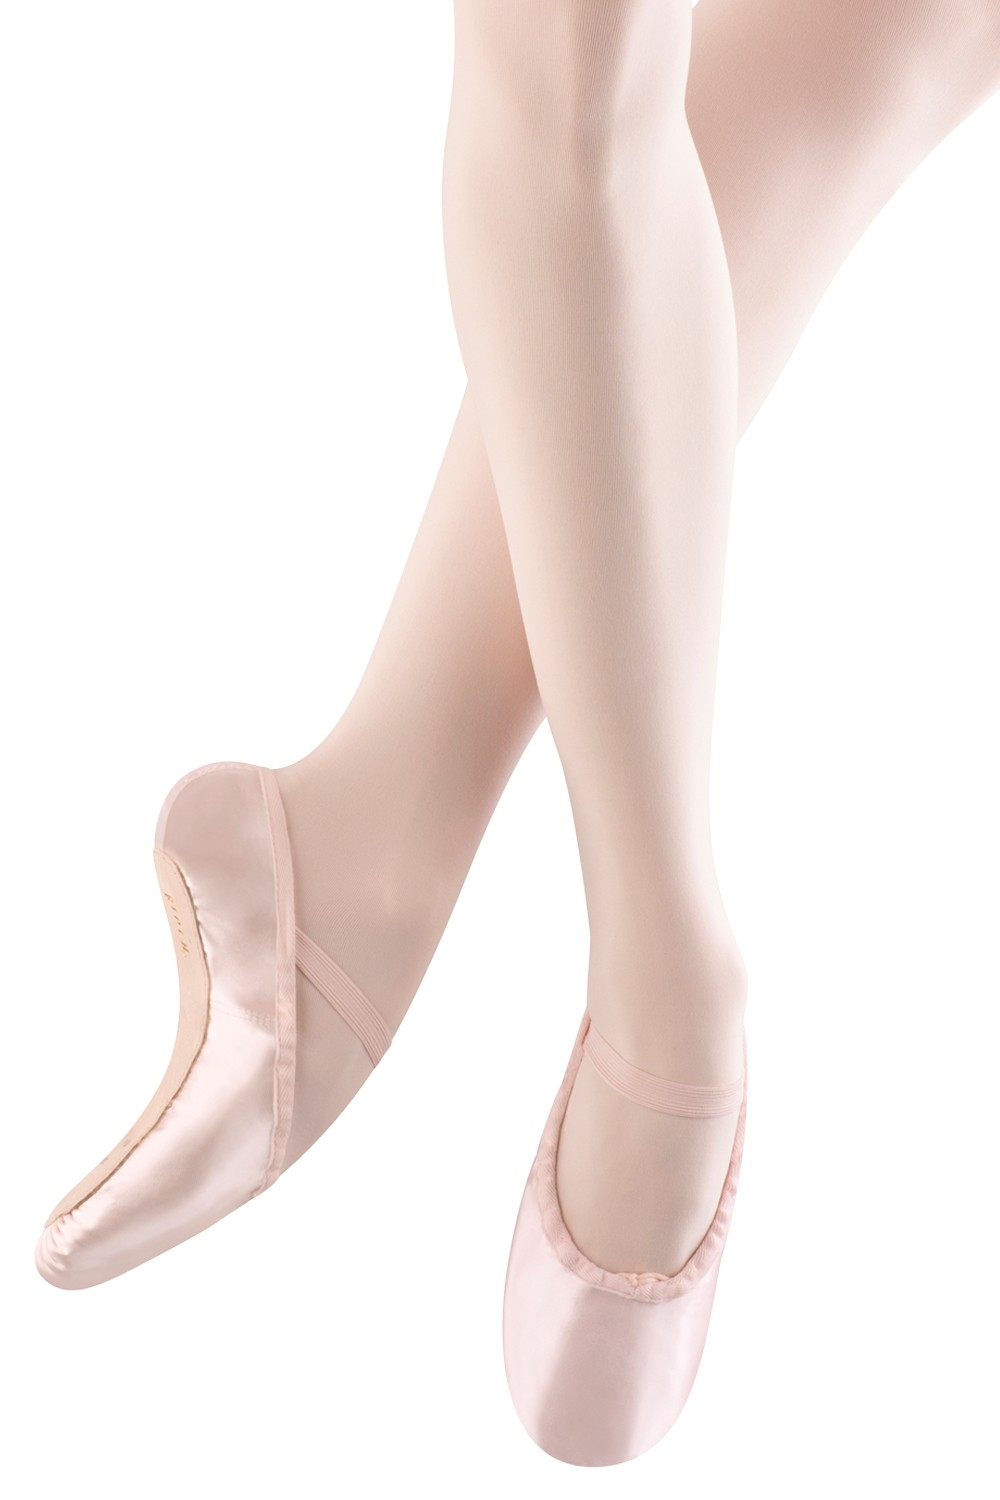 Debut 1 Satin Women's Ballet Shoes